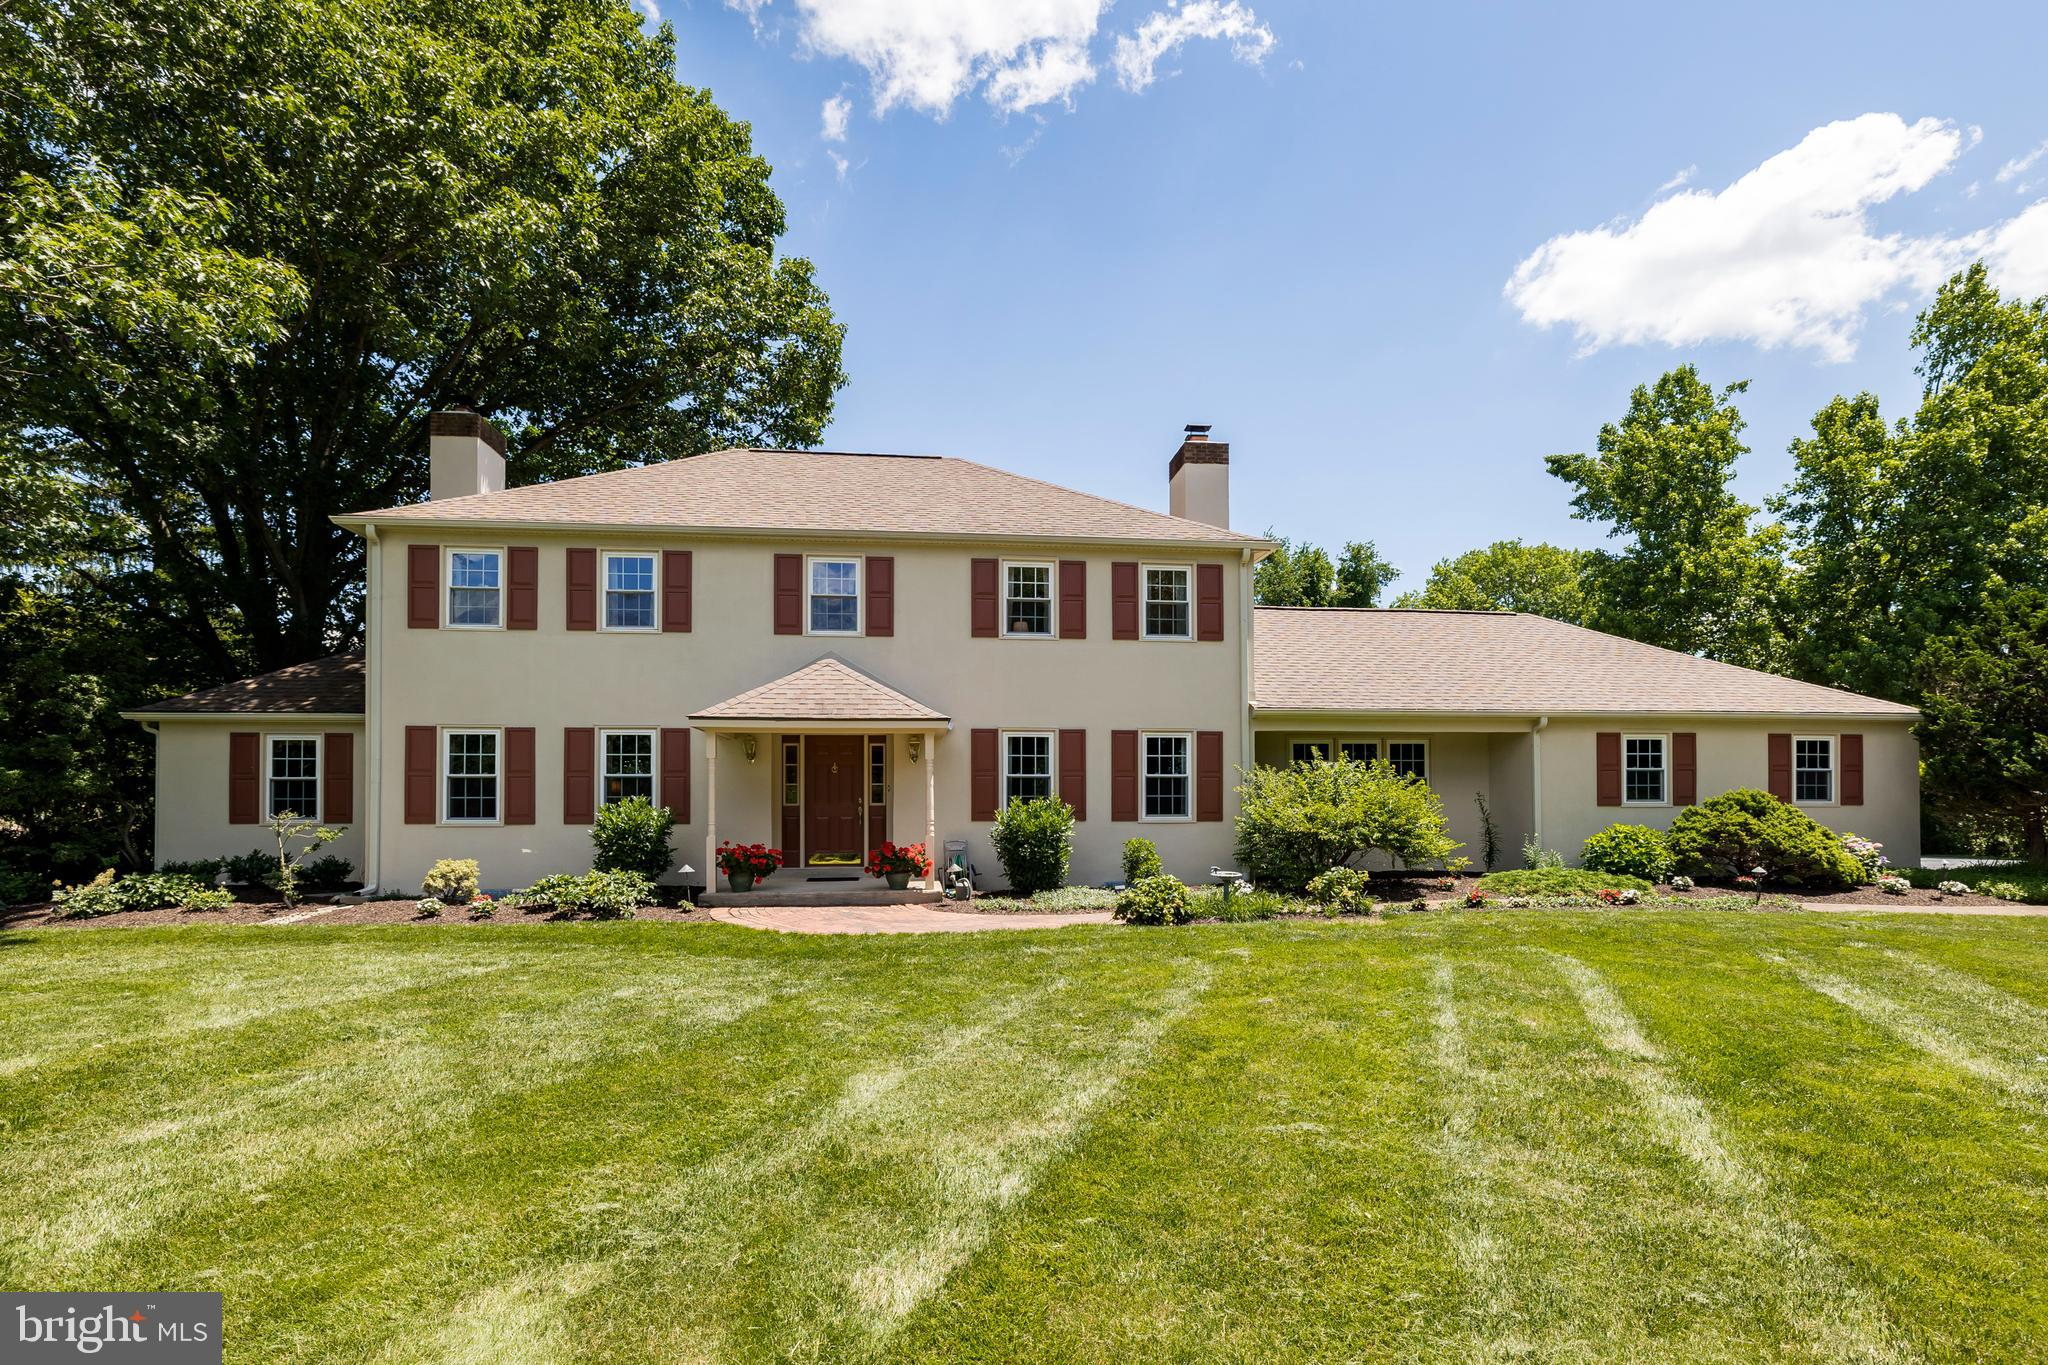 """This executive home sits on 2.7 manicured acres in the heart of Thornbury Township within the Award Wining West Chester Schools and Rustin High School district with low property taxes.  This home features a true IN-LAW SUITE or """"Cottage"""" with a complete separate entrance AND a one car attached garage.  The """"Cottage"""" has a bedroom, full bathroom, kitchen, washer and dryer along with a nice living area and is connected to the main house through the wonderful 4 season Solarium that looks out to a very private back yard and gardens.  The main house is a stately 4 bedroom, 2.5 bathroom classic colonial with a true """"Tree Lined Driveway"""" that starts your tour.  The driveway brings you to the side load 2 car garage and the one car garage for the """"Cottage"""" and the separate entrance to the """"Cottage"""" or In-Law Suite.  The main entrance to this home starts with a small covered porch, foyer w/hardwood floors and opens up to the formal living room with hardwood floors, crown molding and a formal dining room with  hardwood floors, chair rails and crown molding. The Updated Kitchen has a nice size island w/ granite counter tops, beautiful kitchen cabinets, great eating area w/ bay windows looking out the backyard, the kitchen opens up to a unique large (23'x15') family room with a raised hearth fireplace, cathedral ceilings and beams, pegged random width hardwood floors and built in bookcases. Next to the formal living room is a wonderful and private Den/Office with it's own fireplace and hardwood floors.  The second floor of this fine home is just as nice and updated as the first floor with a large (23'x13') main bedroom suite including a spacious updated full bathroom and walk in closets.  There are 3 additional very nice sized bedrooms and a full hall bathroom to finish off the second floor.  The basement has been freshly painted and is partially finished with carpet, drop ceilings, wainscoting along with a separate work/utility room. This is a wonderful opportunity to own a hom"""